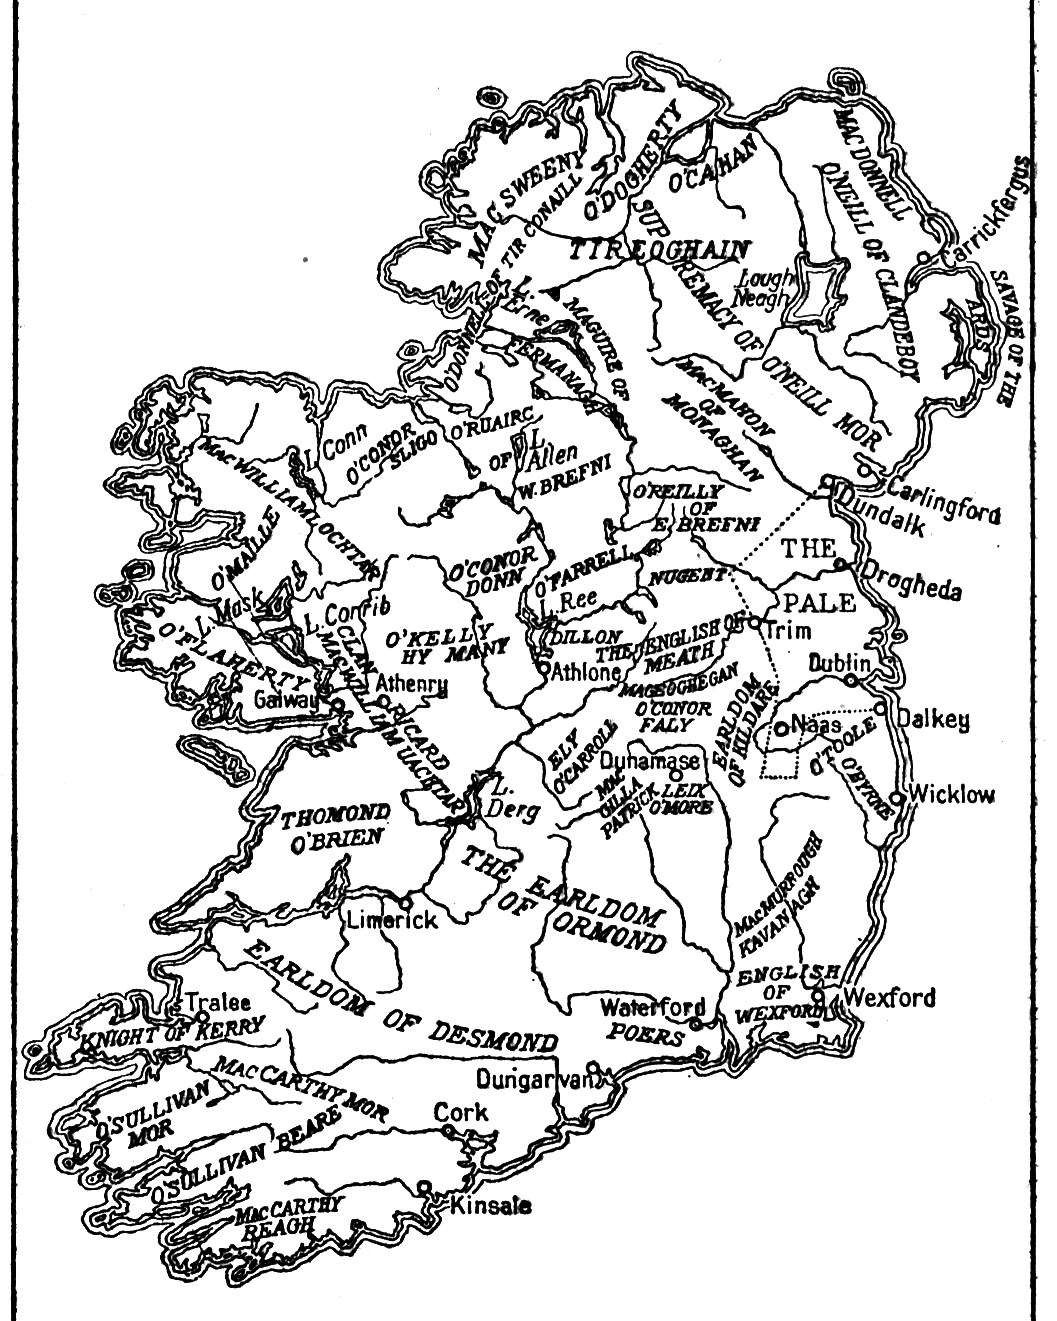 Map Of England In 1500.Life In Elizabethan England Maps Ireland 1500